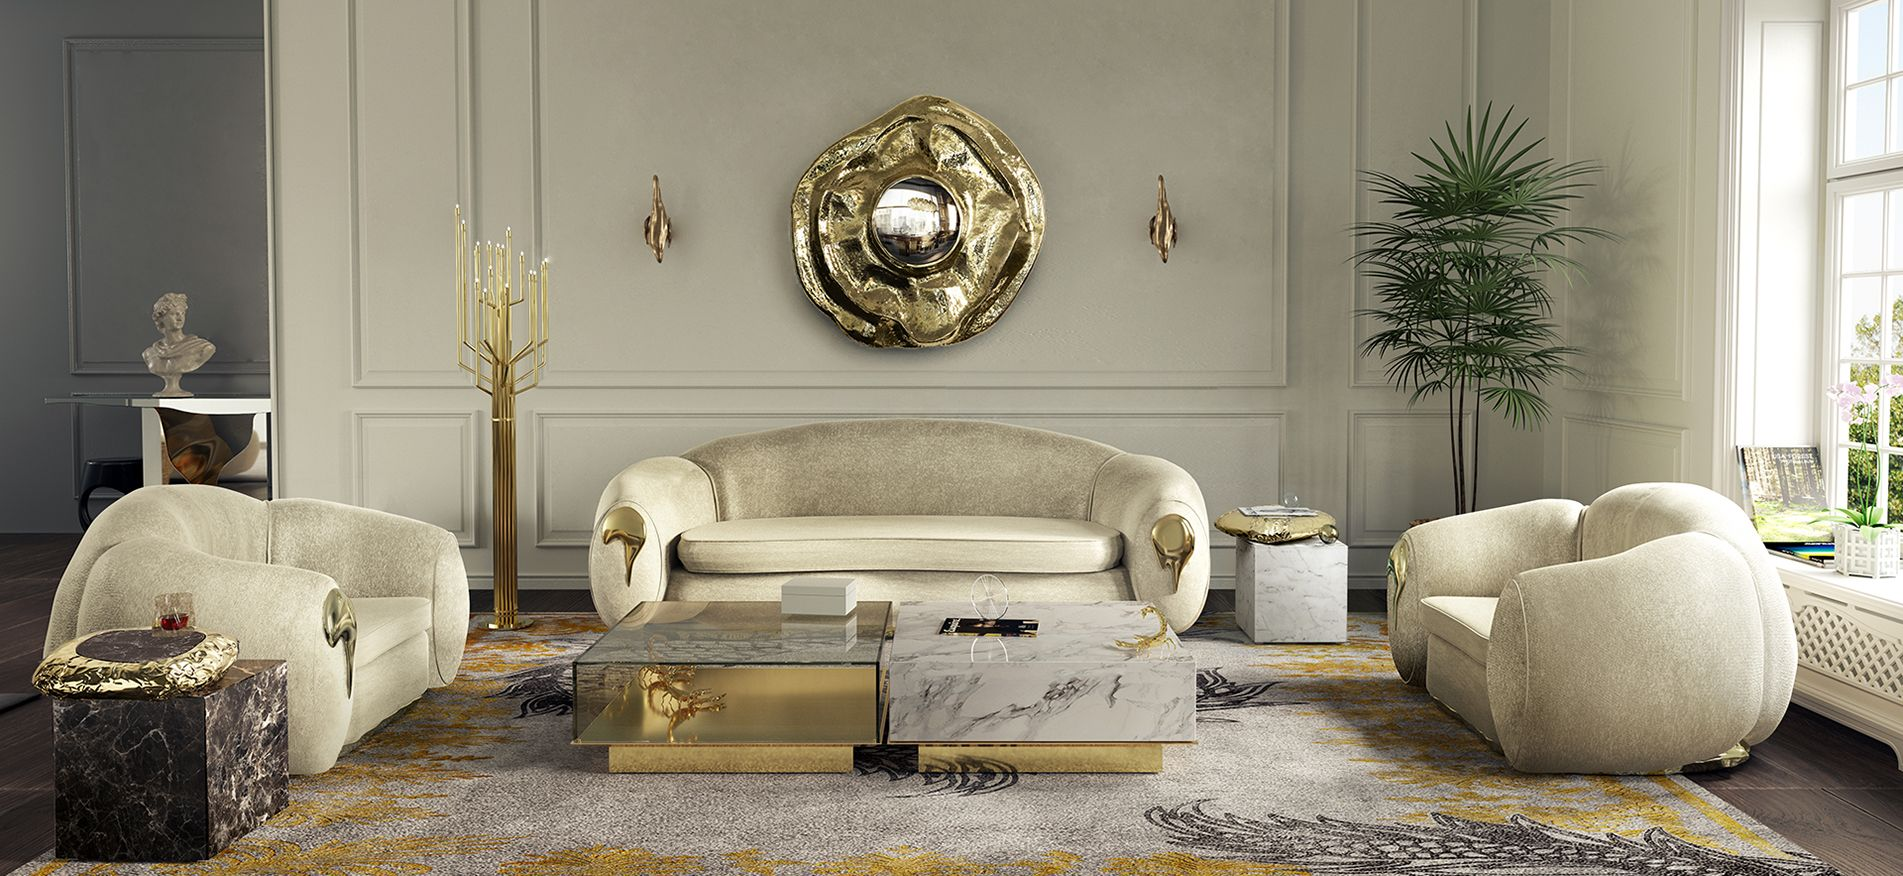 Trendy Center Tables For 2019 Luxury Furniture Luxury Home